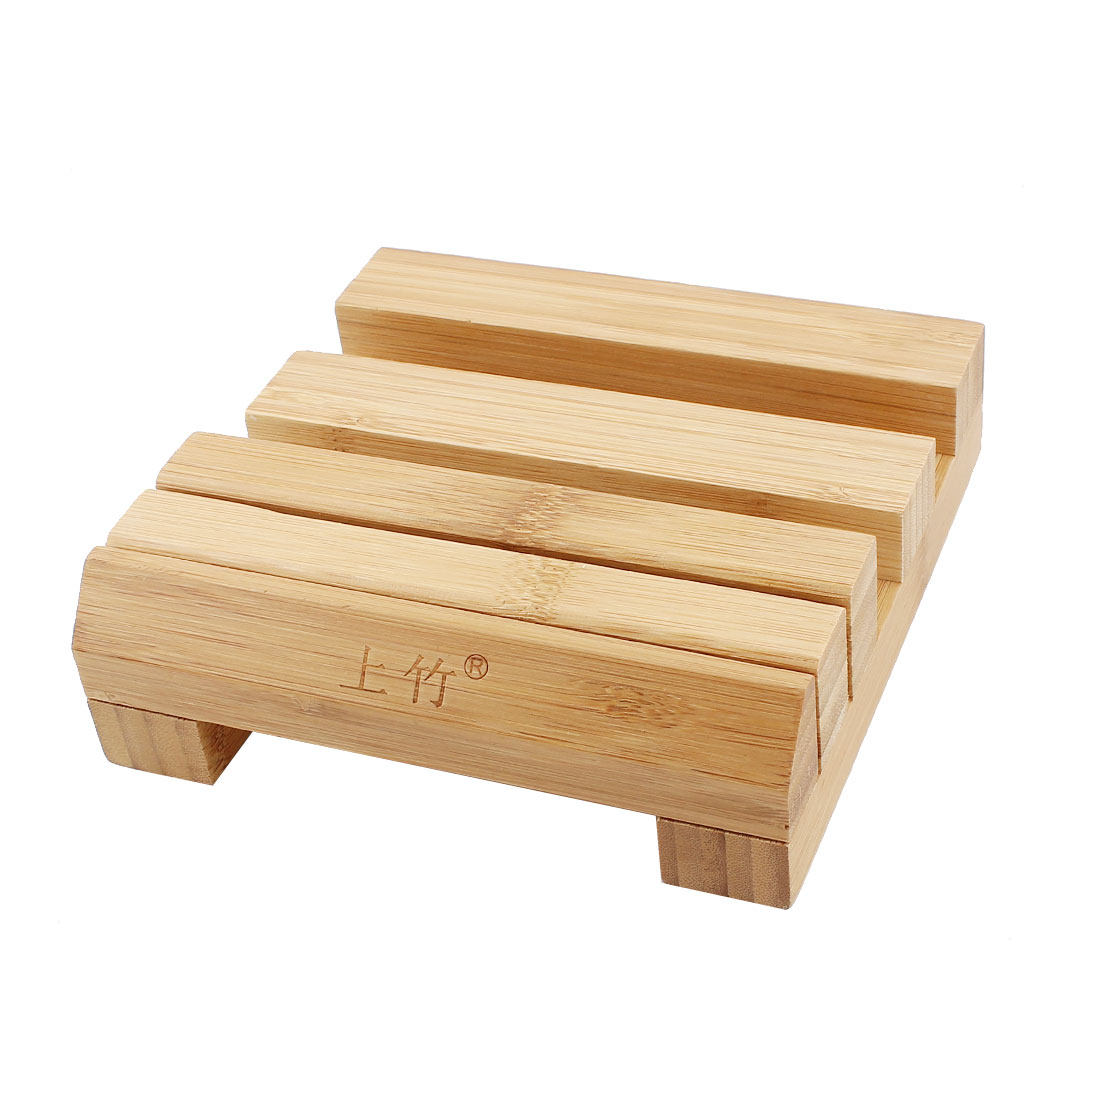 Bamboo Cutting Board Holder Rack Cutlery Cutter Storage Block